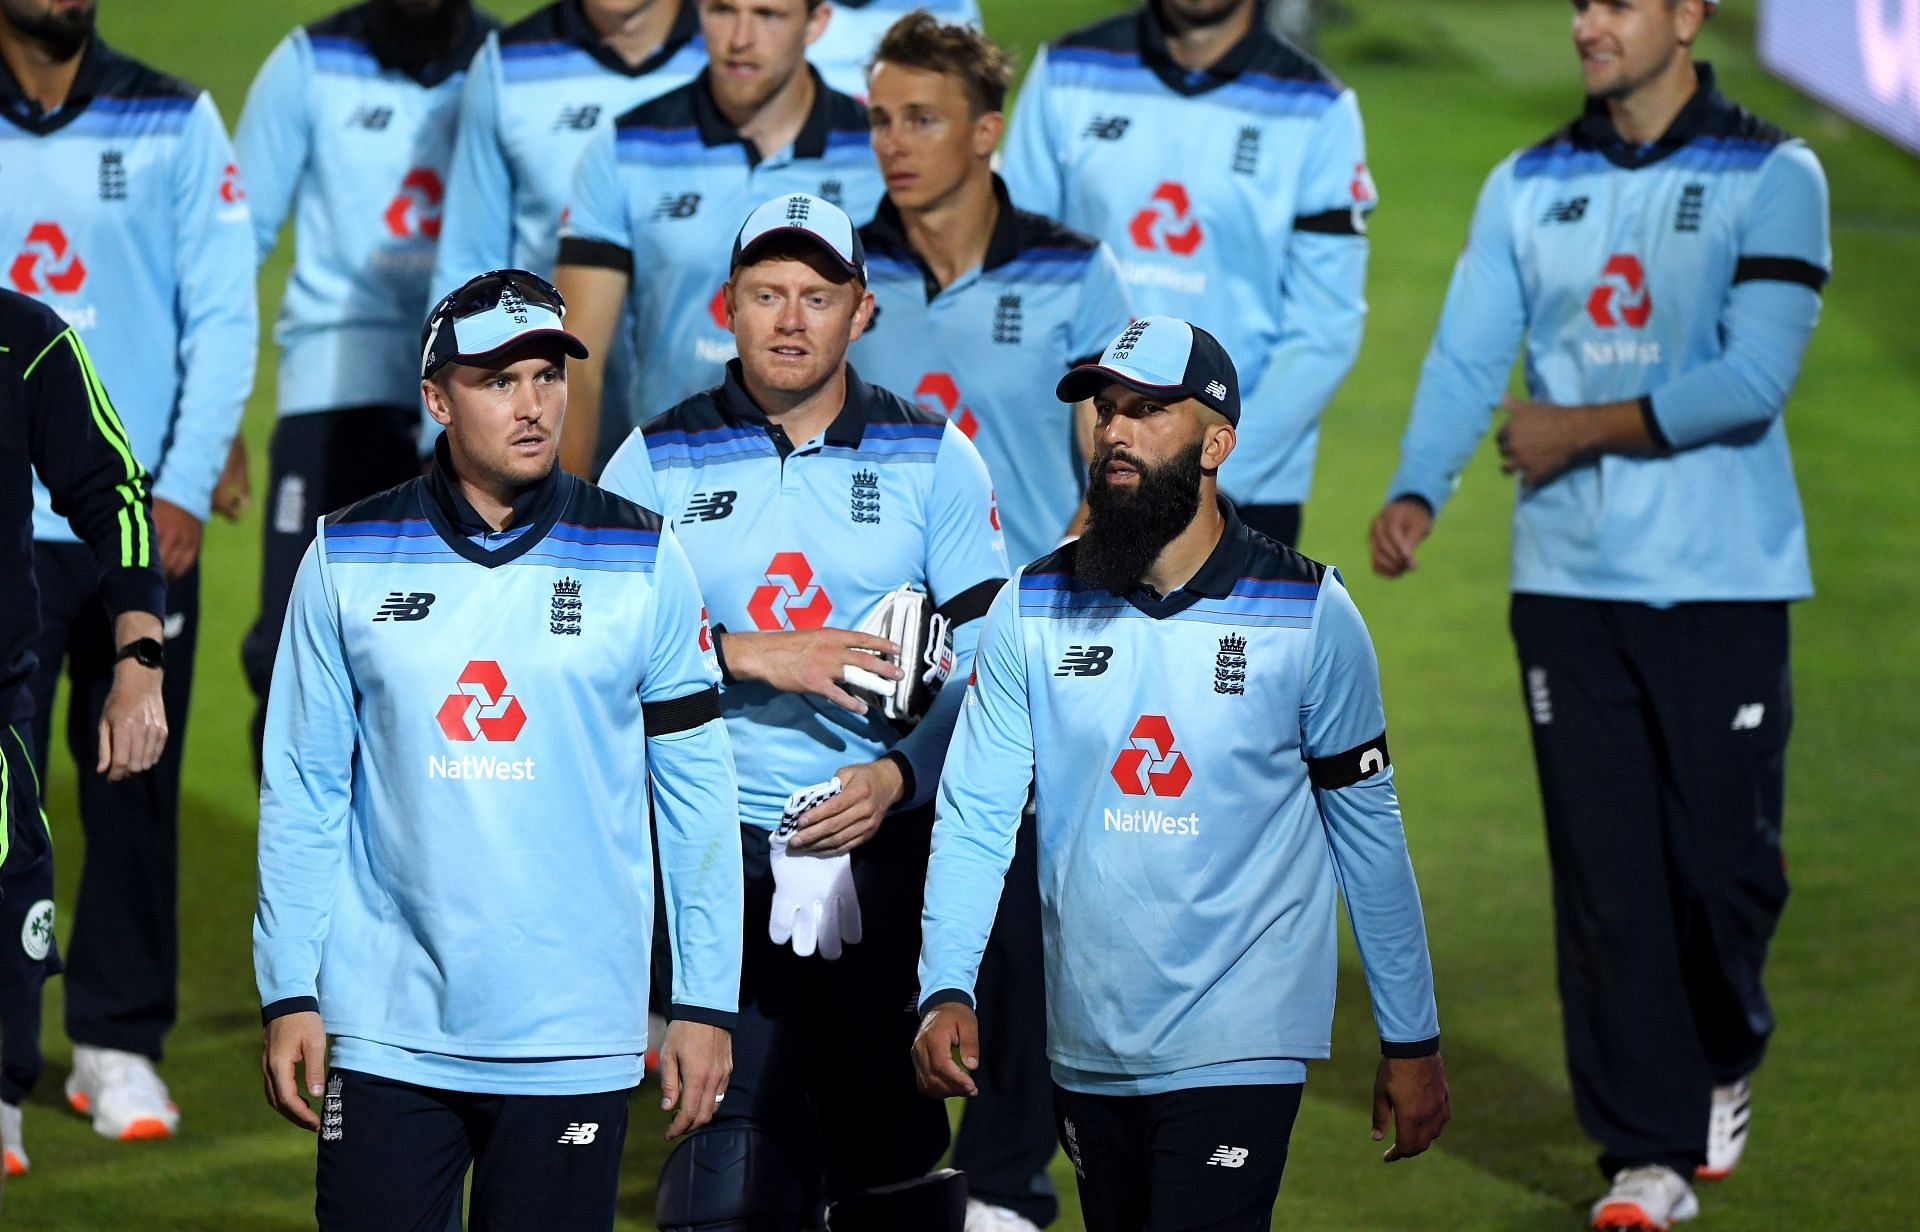 England are hot favorites going into the T20 World Cup